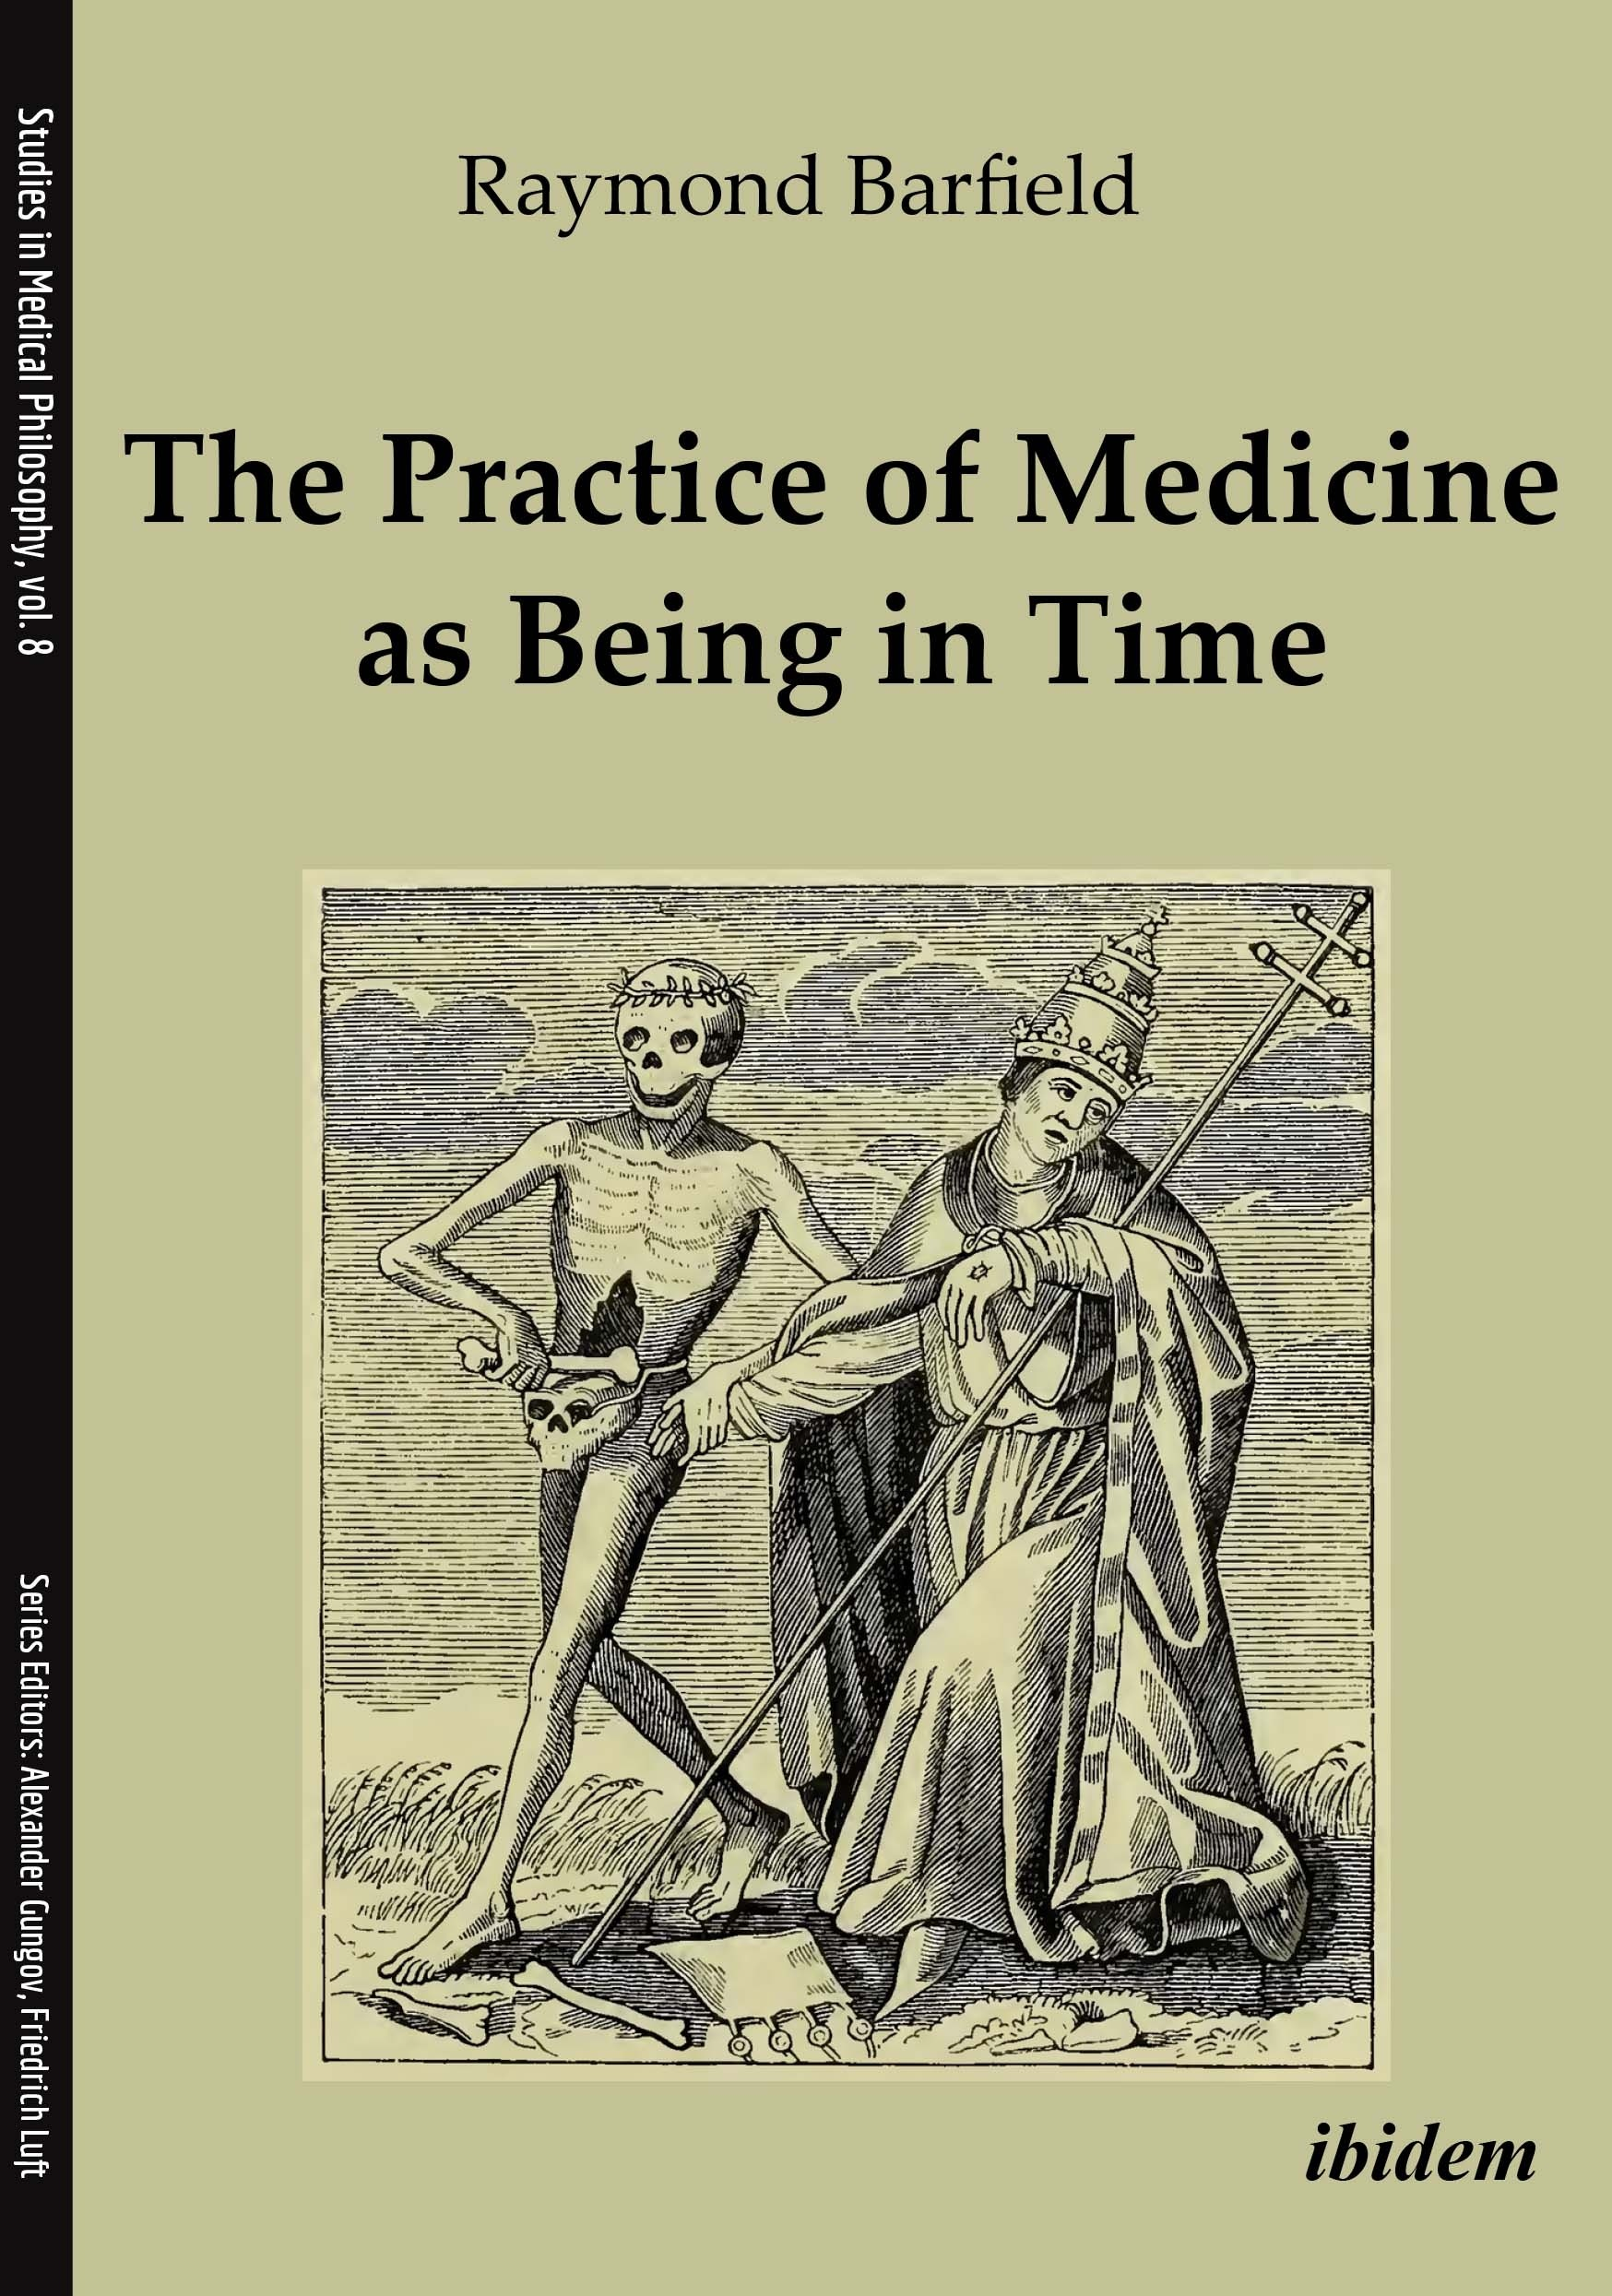 The Practice of Medicine as Being in Time